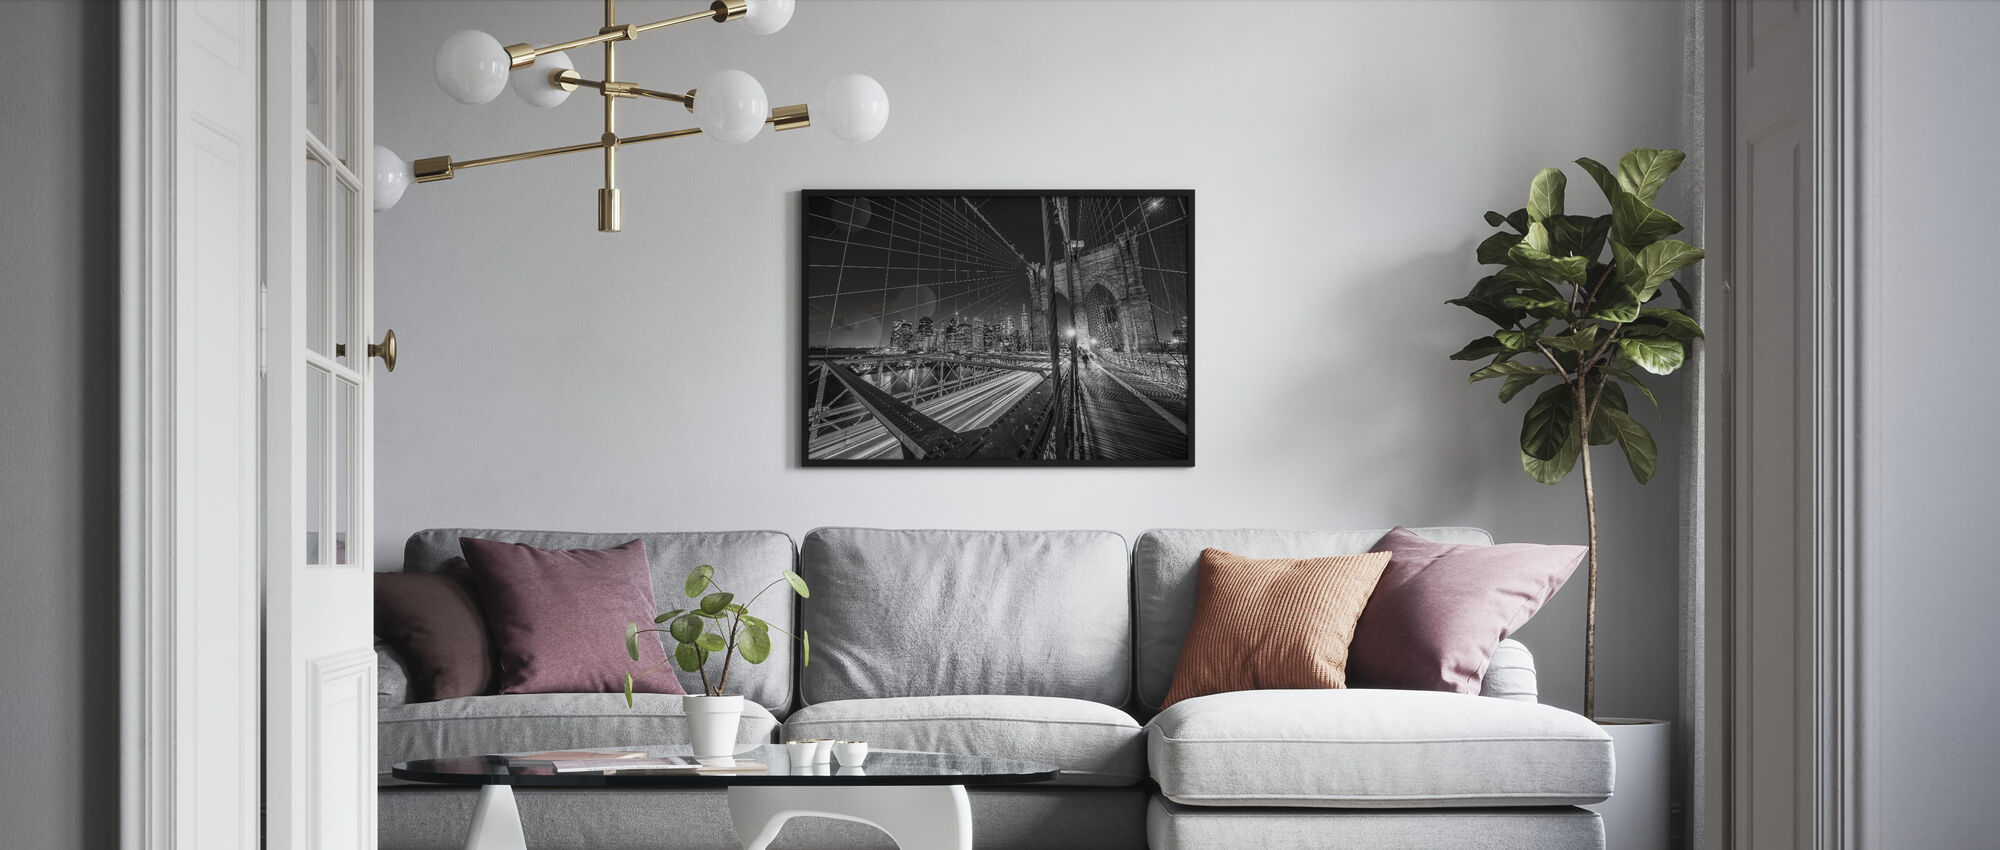 Brooklyn Bridge Lights - Framed print - Living Room